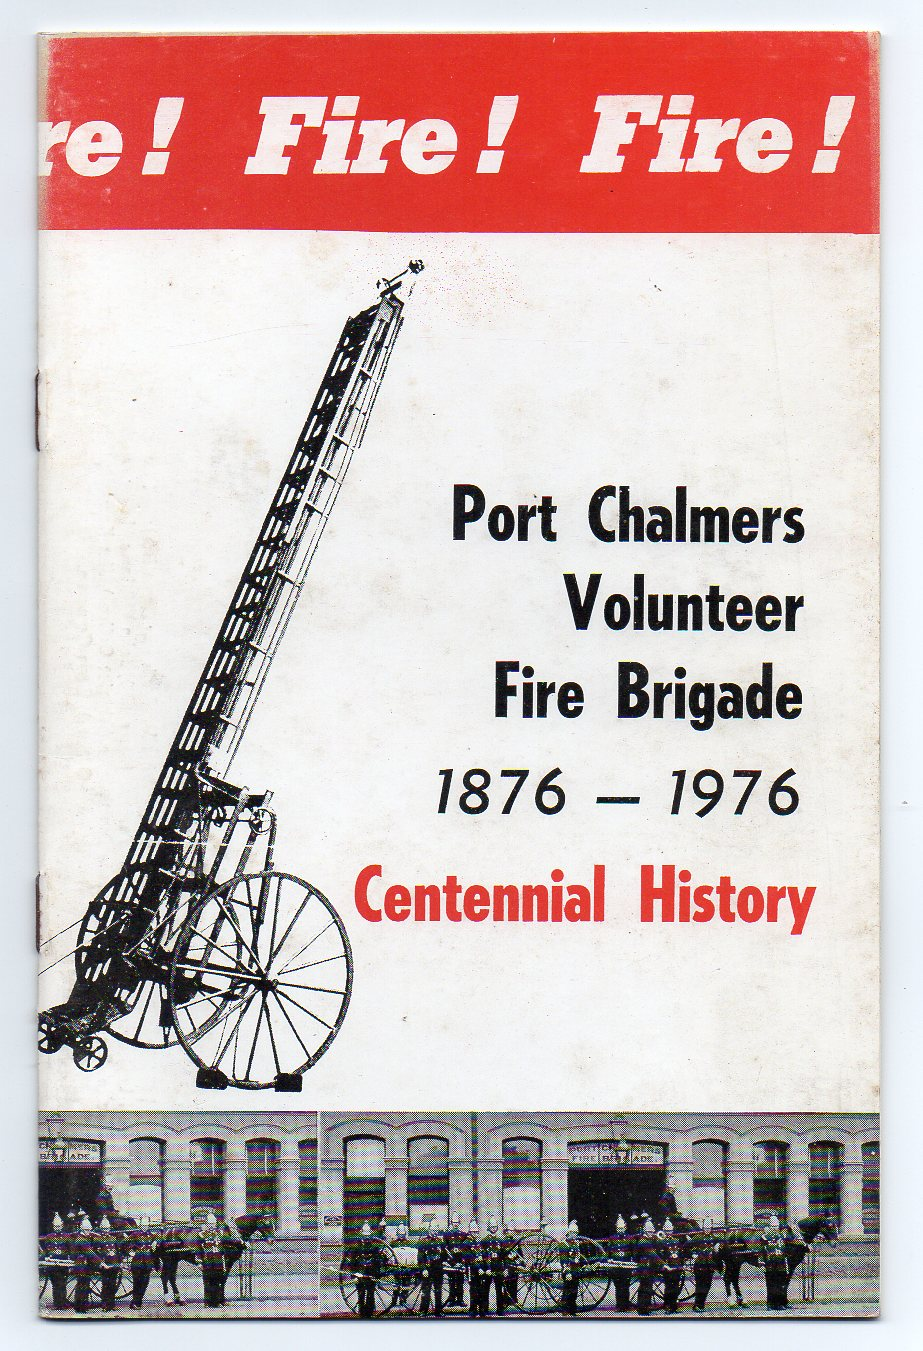 Image for Port Chalmers Volunteer Fire Brigade - Established June 1, 1876 [cover title: Port Chalmers Volunteer Fire Brigade 1876-1976 Centennial History]